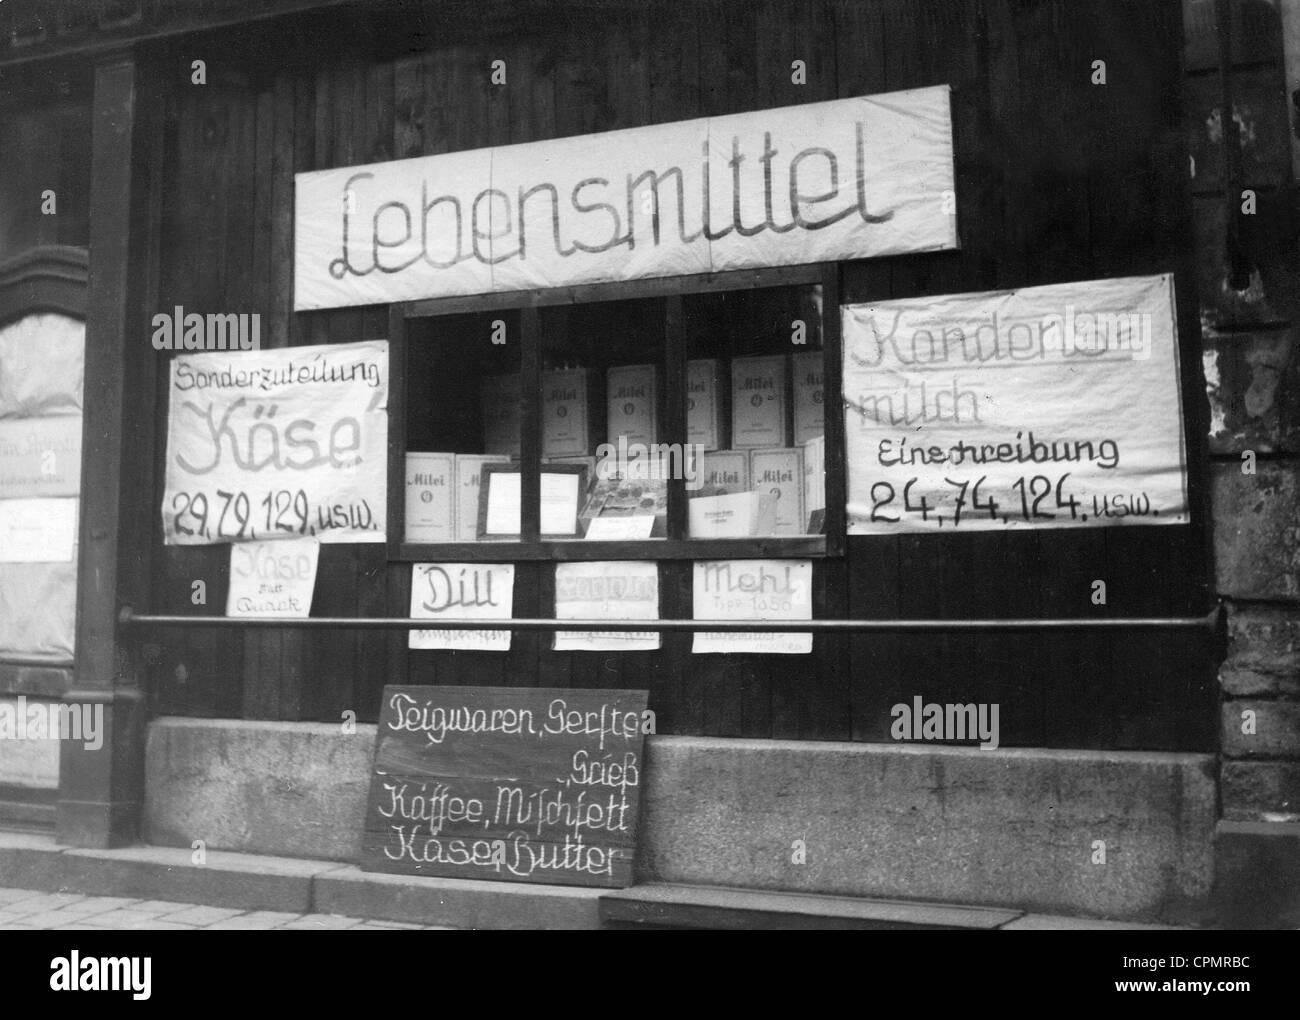 Food supply in Germany during the Second World War - Stock Image